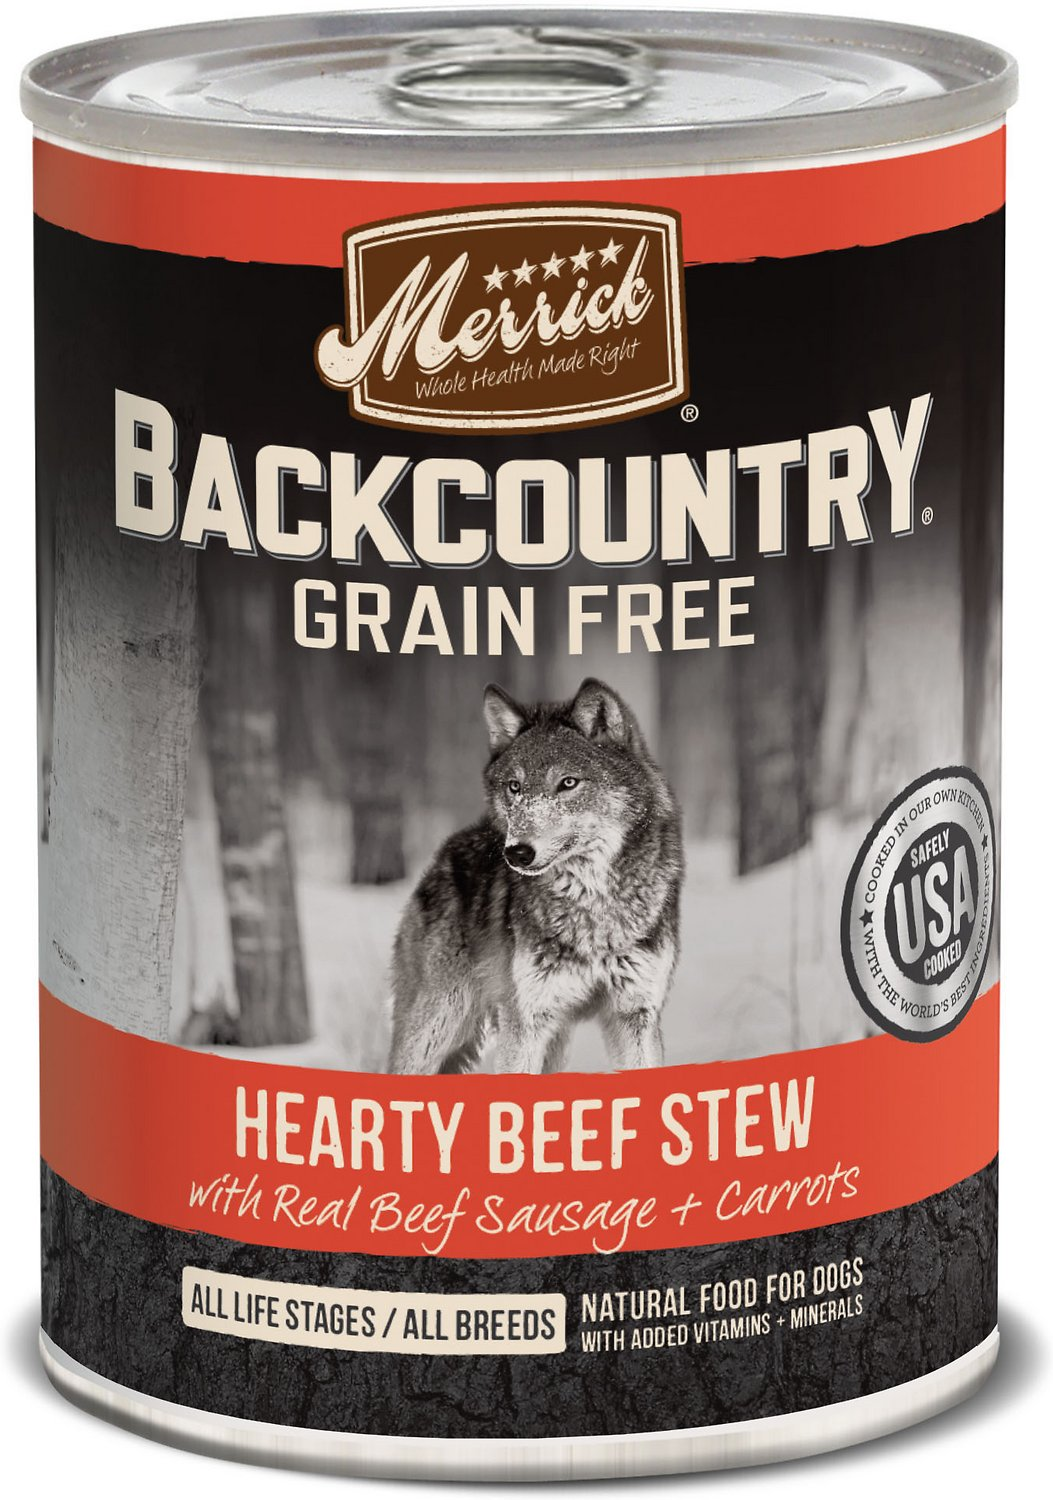 Merrick Backcountry Grain-Free Hearty Beef Stew Canned Dog Food, 12.7-oz